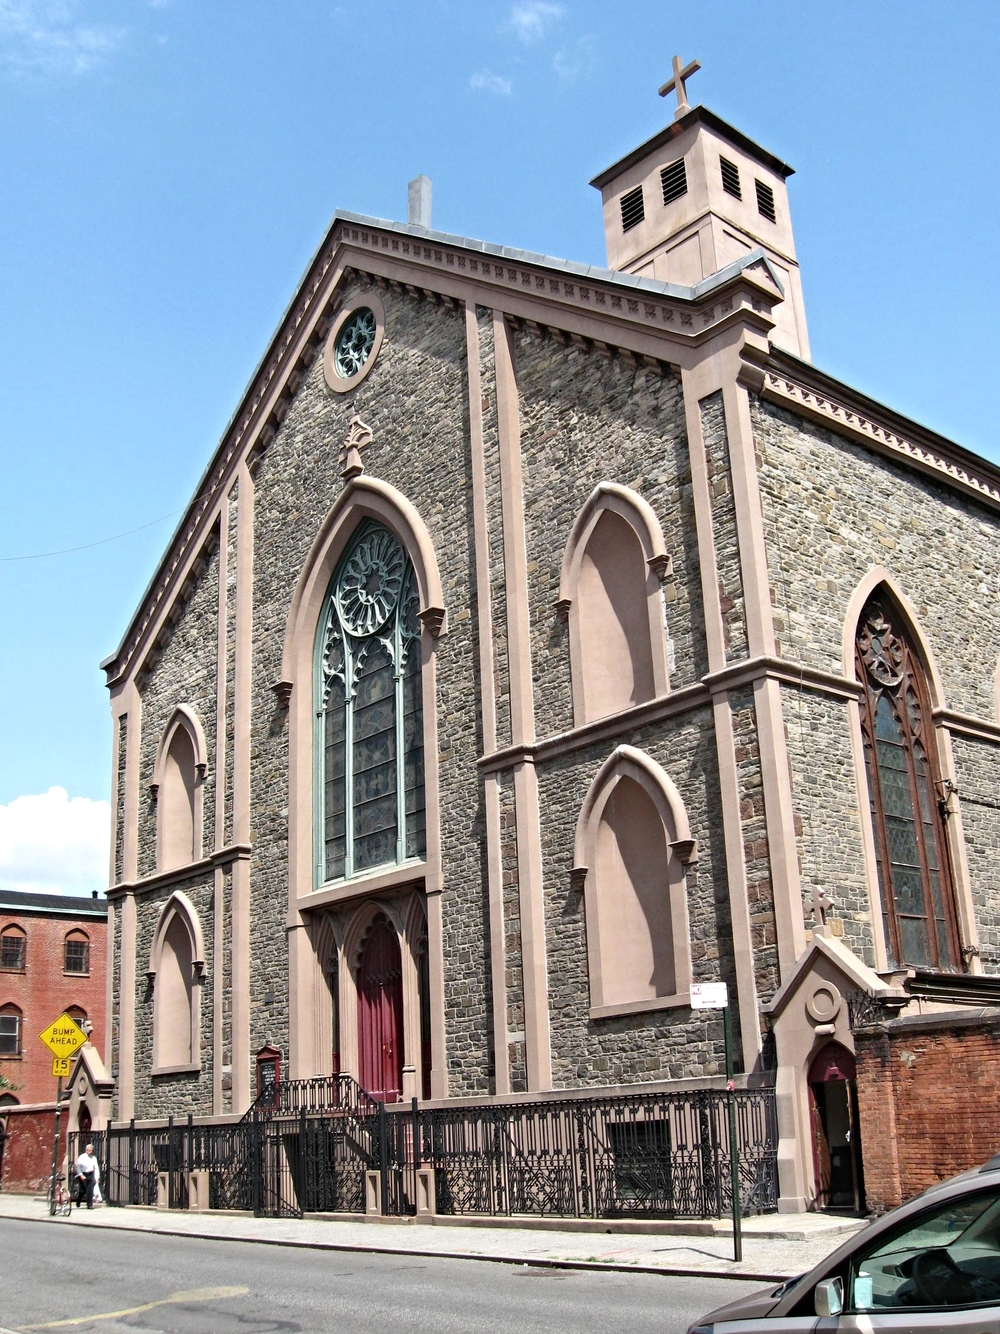 The Basilica of Saint Patrick's Old Cathedral, or Old St. Patrick's, is located at 260–264 Mulberry Street between Prince and Houston Streets in the Nolita neighborhood of Manhattan, New York City, with the primary entrance currently located on Mott Street.